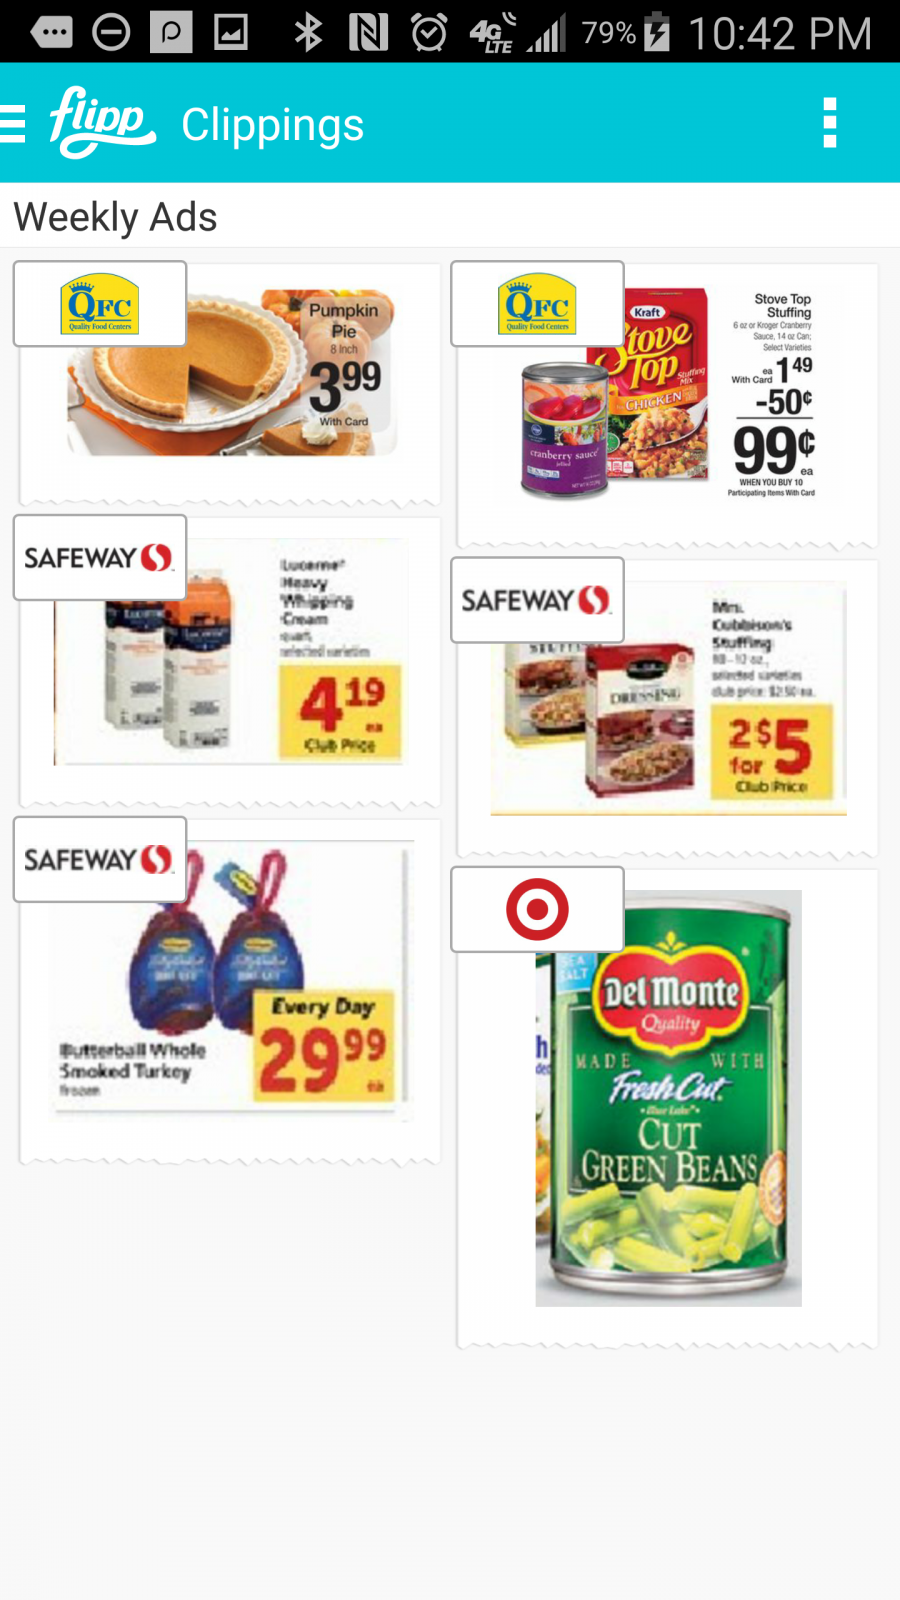 Flipp App - My Clippings - Flipp App - circulars online with coupons and matchups for major retailers across the US. ad